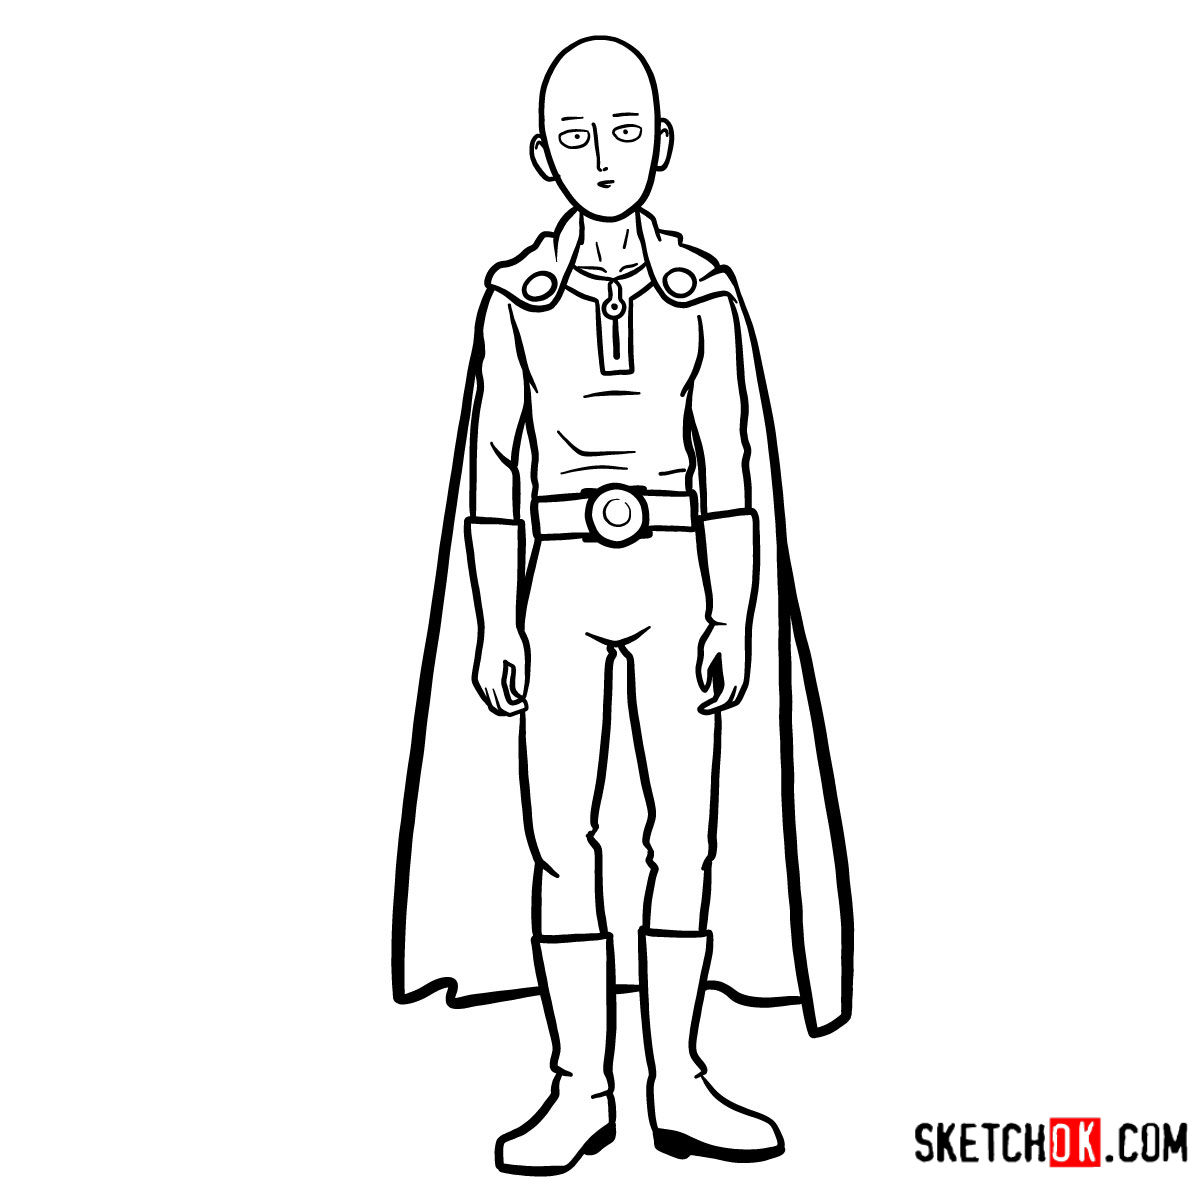 13 steps drawing tutorial of Saitama One-Punch Man